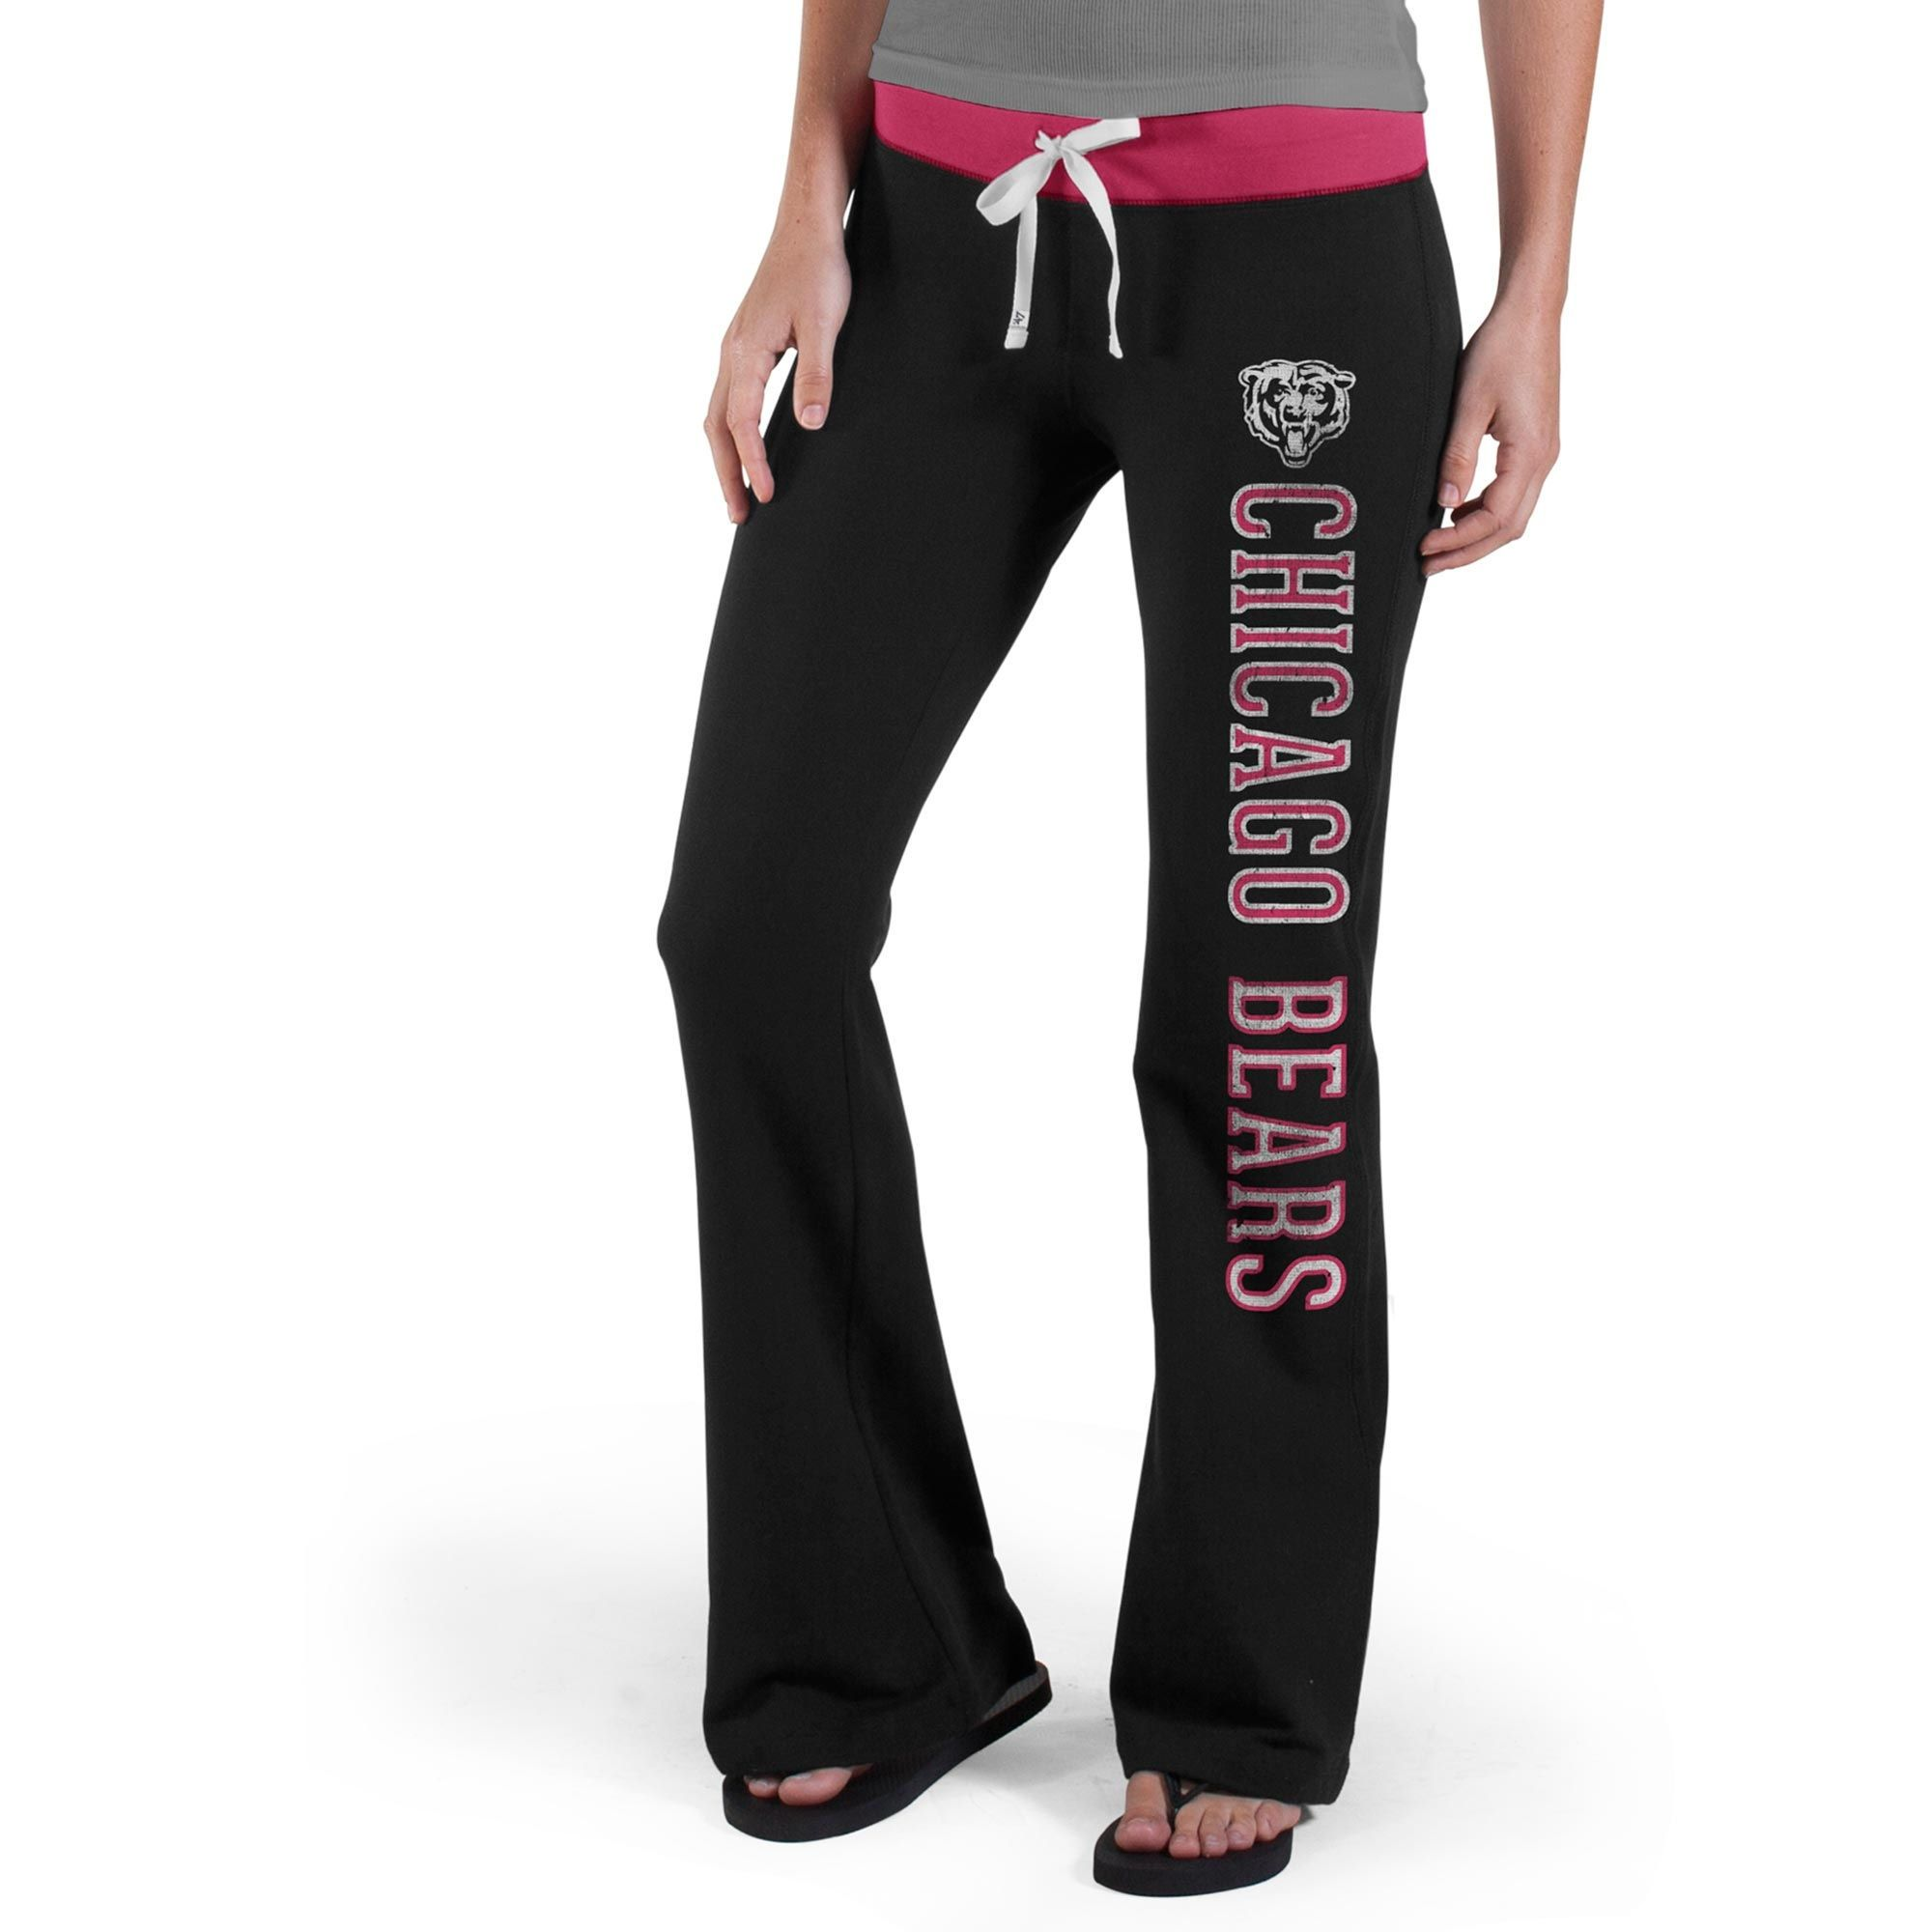 959157e9 47 Brand Chicago Bears Women's Black/Pink Powerstretch Pants | Da ...